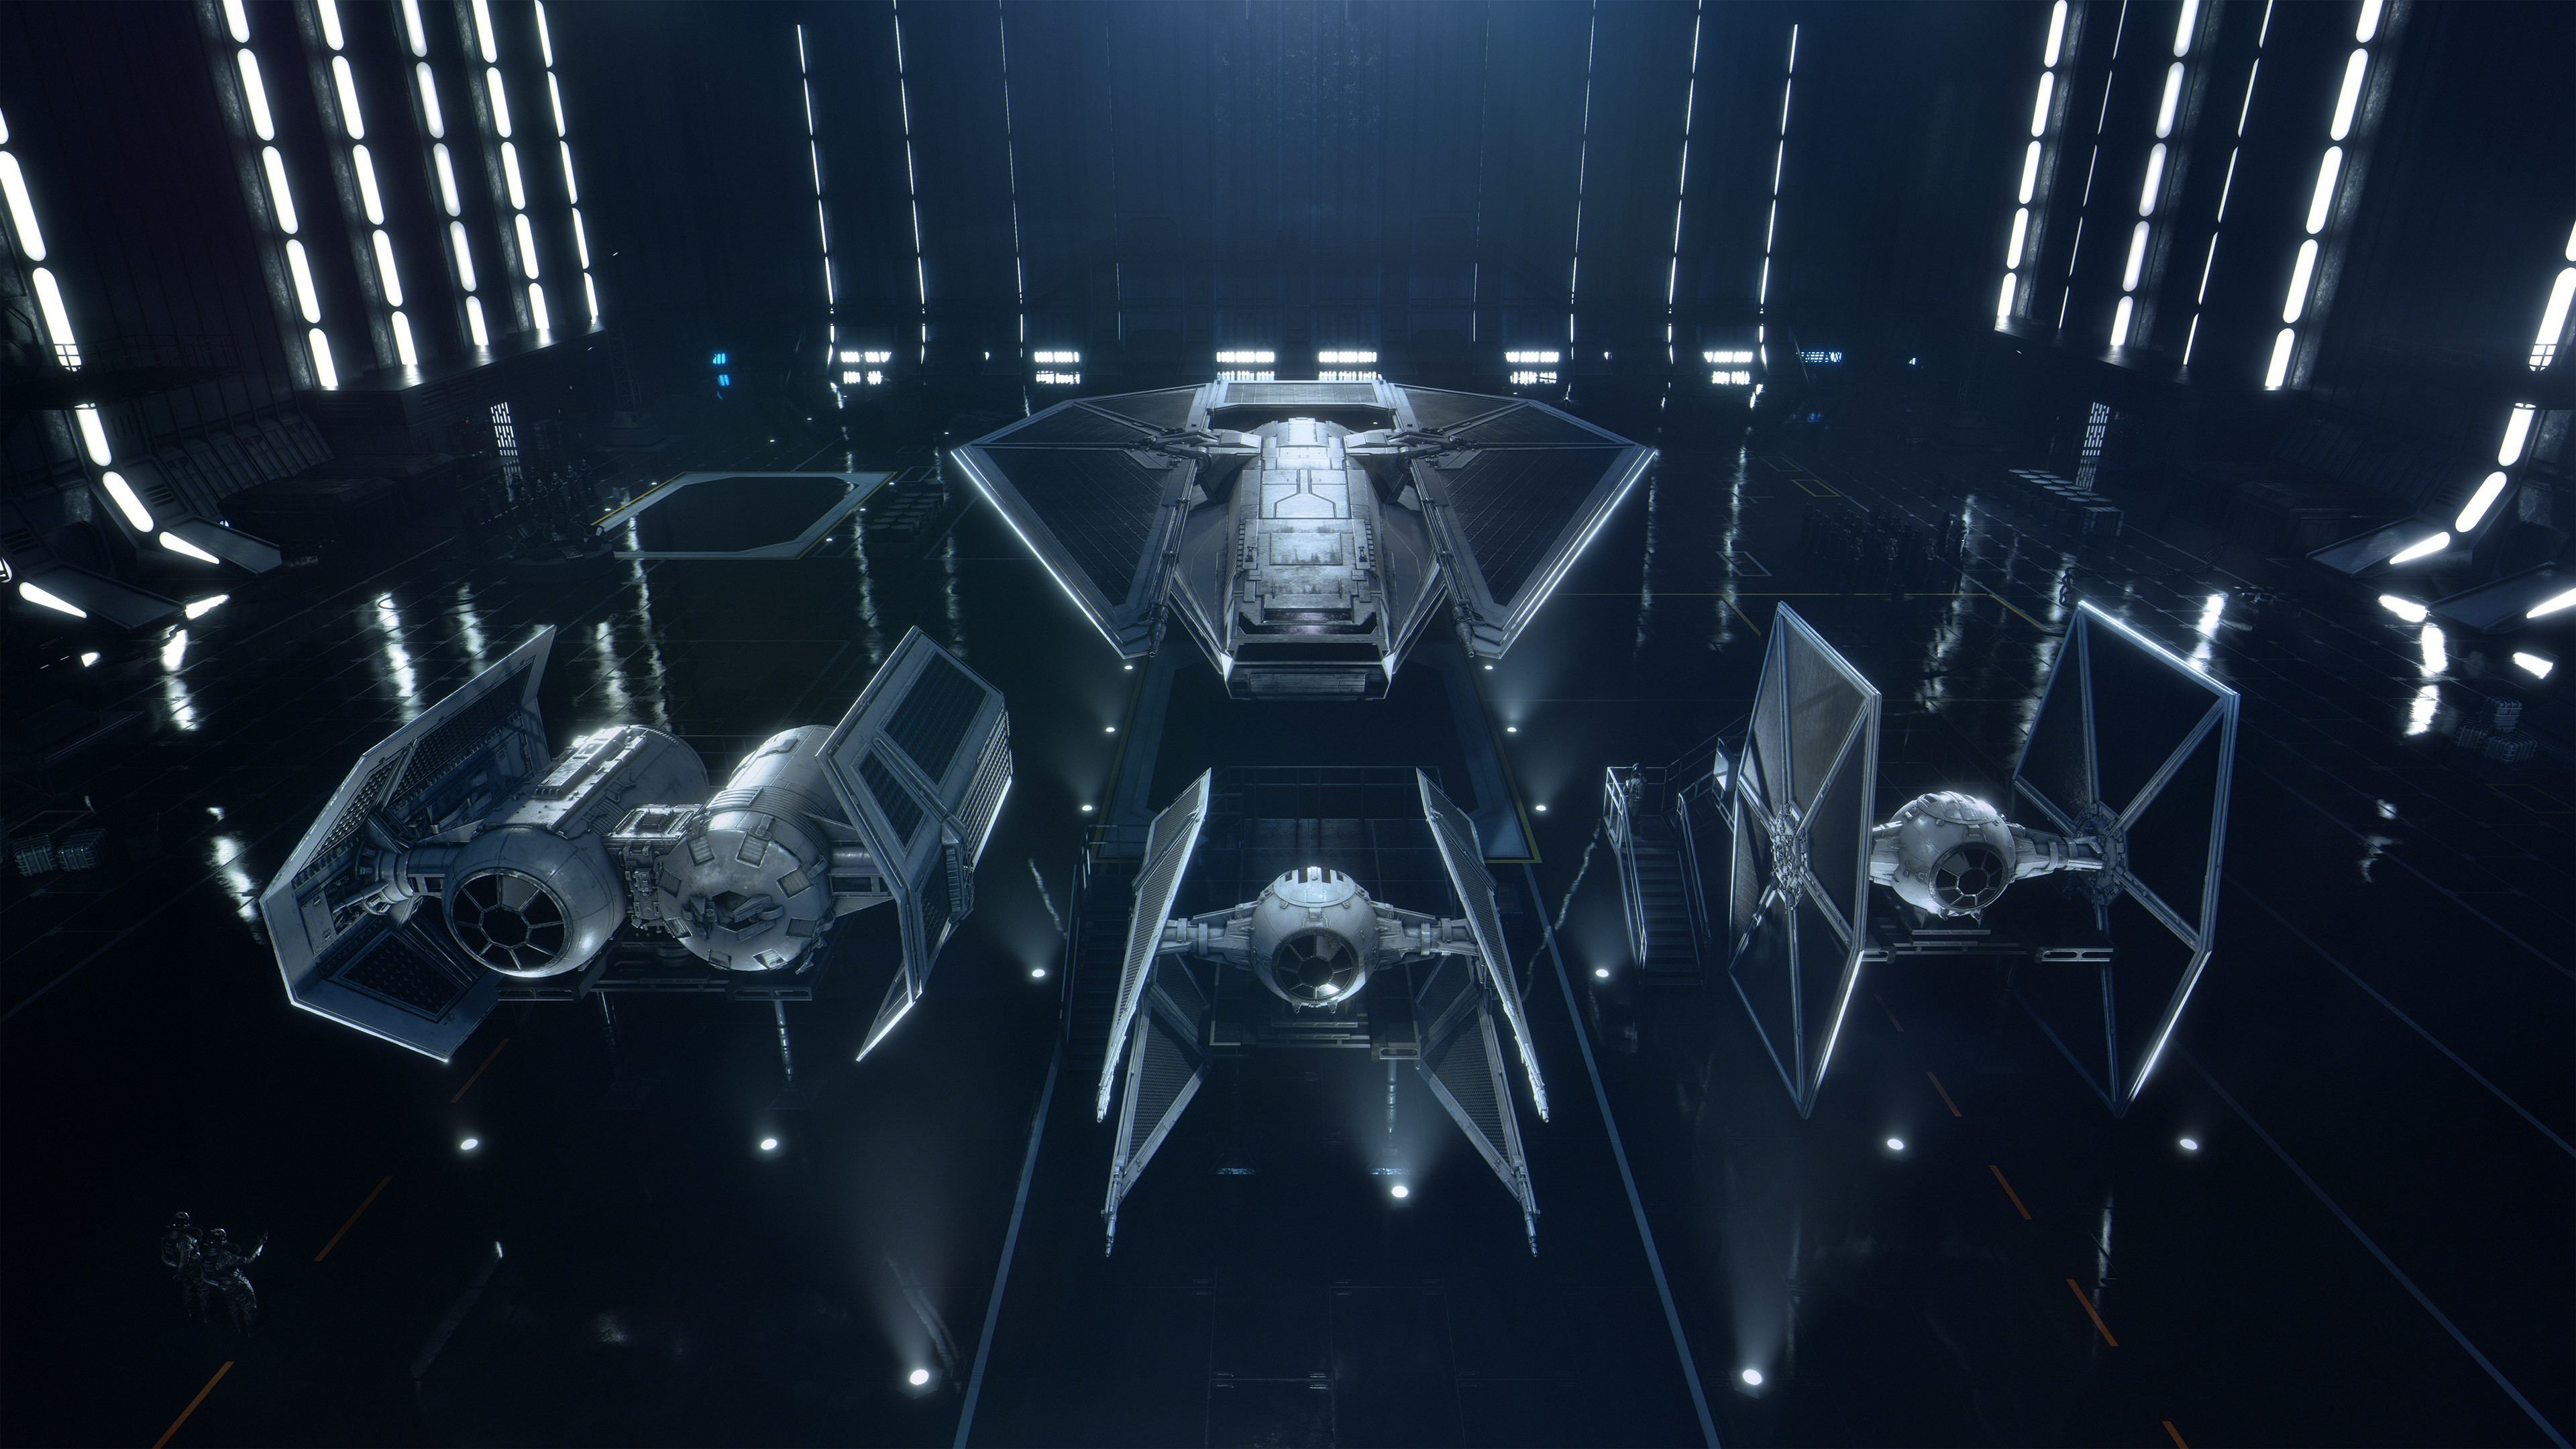 2560x1440 4k Star Wars Squadrons 2020 1440p Resolution Wallpaper Hd Games 4k Wallpapers Images Photos And Background